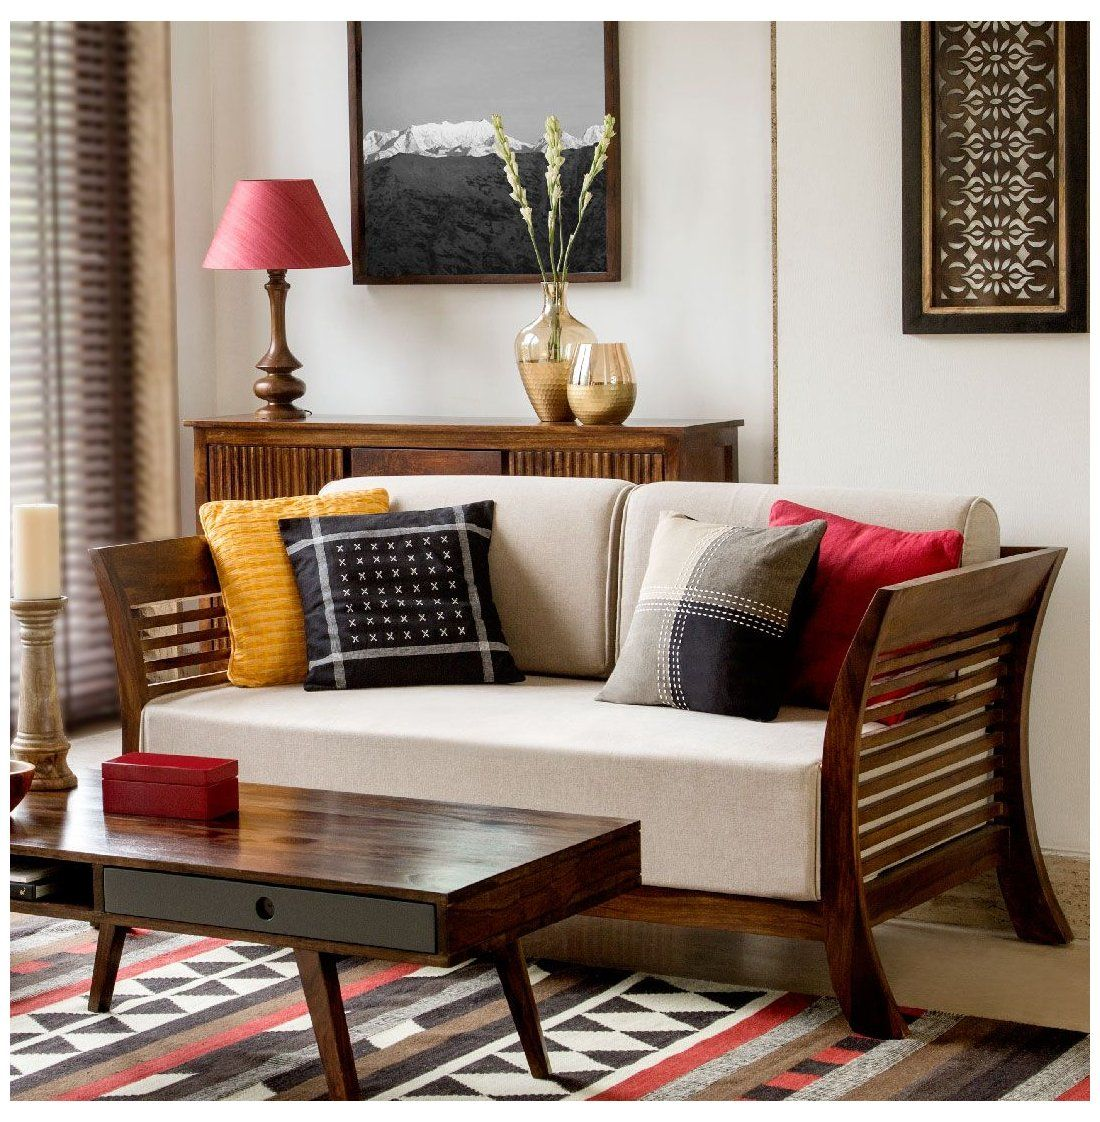 Wood Sofa Indian Woodsofaindian Living Cosy Furniture Home Decor Upholstery Cushions Wooden Sofa Designs Indian Living Rooms Indian Interior Design